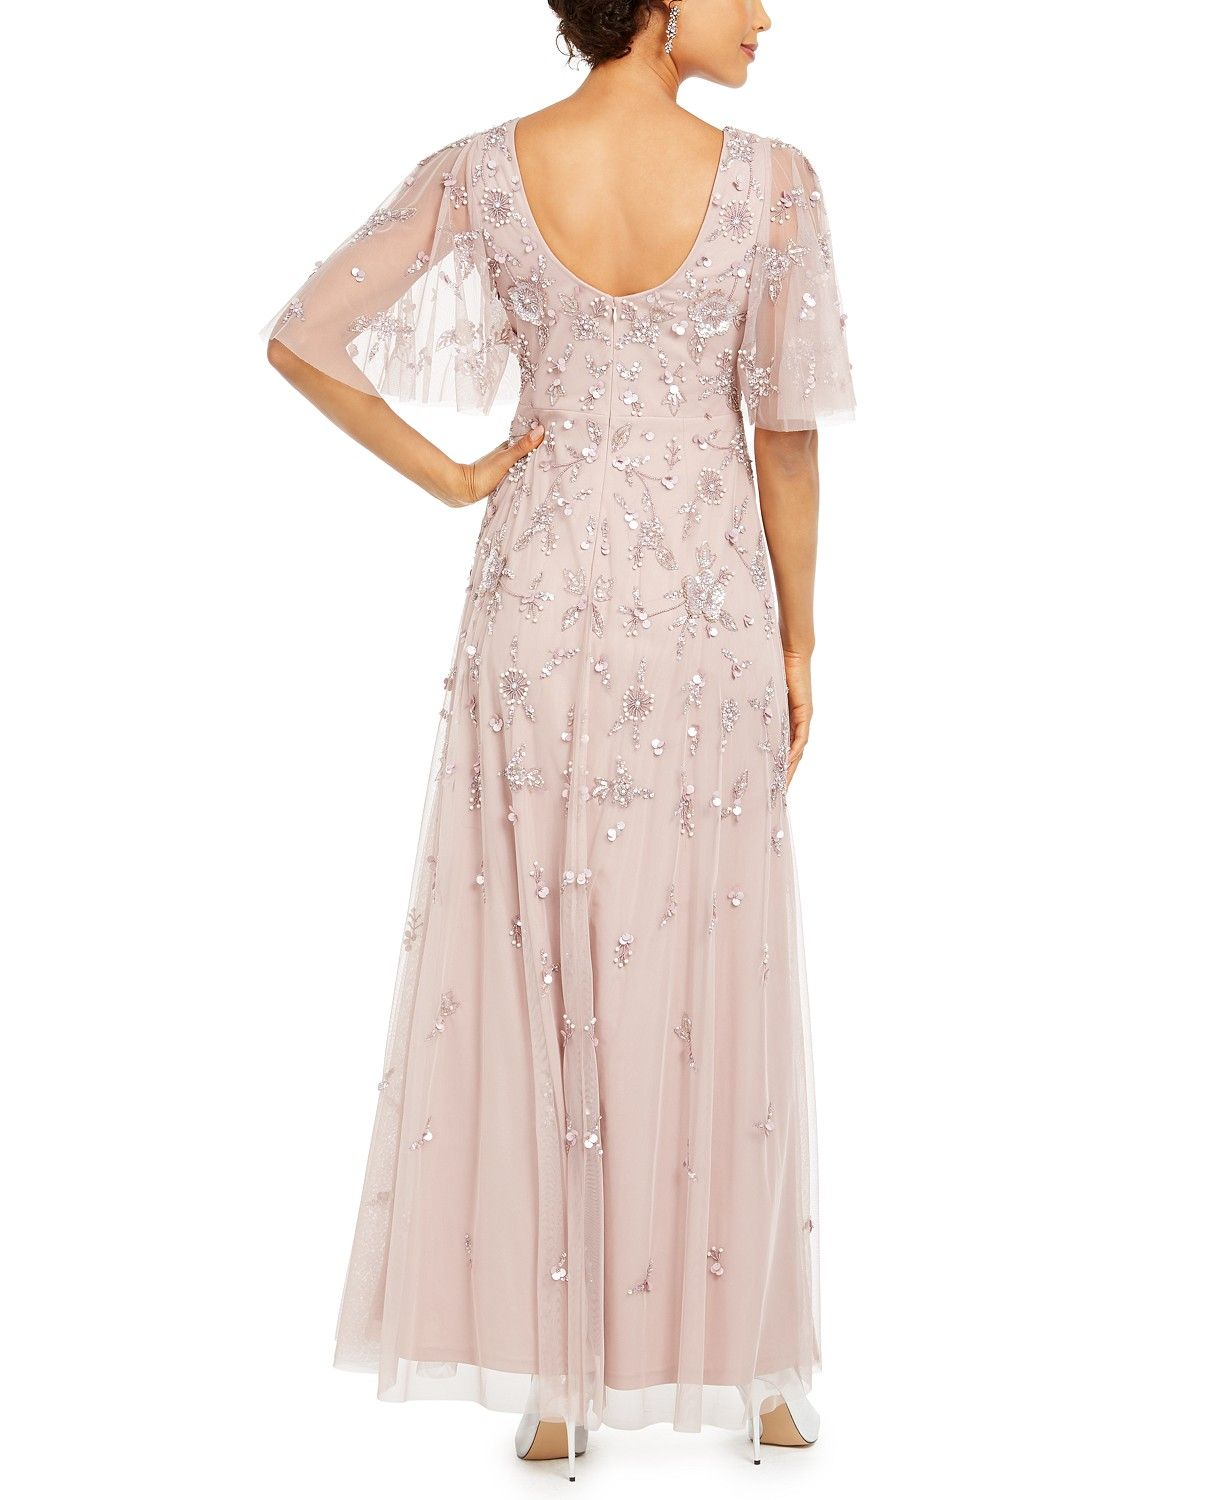 Adrianna Papell Beaded Mesh Gown Reviews Dresses Women Macy S In 2020 Review Dresses Womens Dresses Gowns